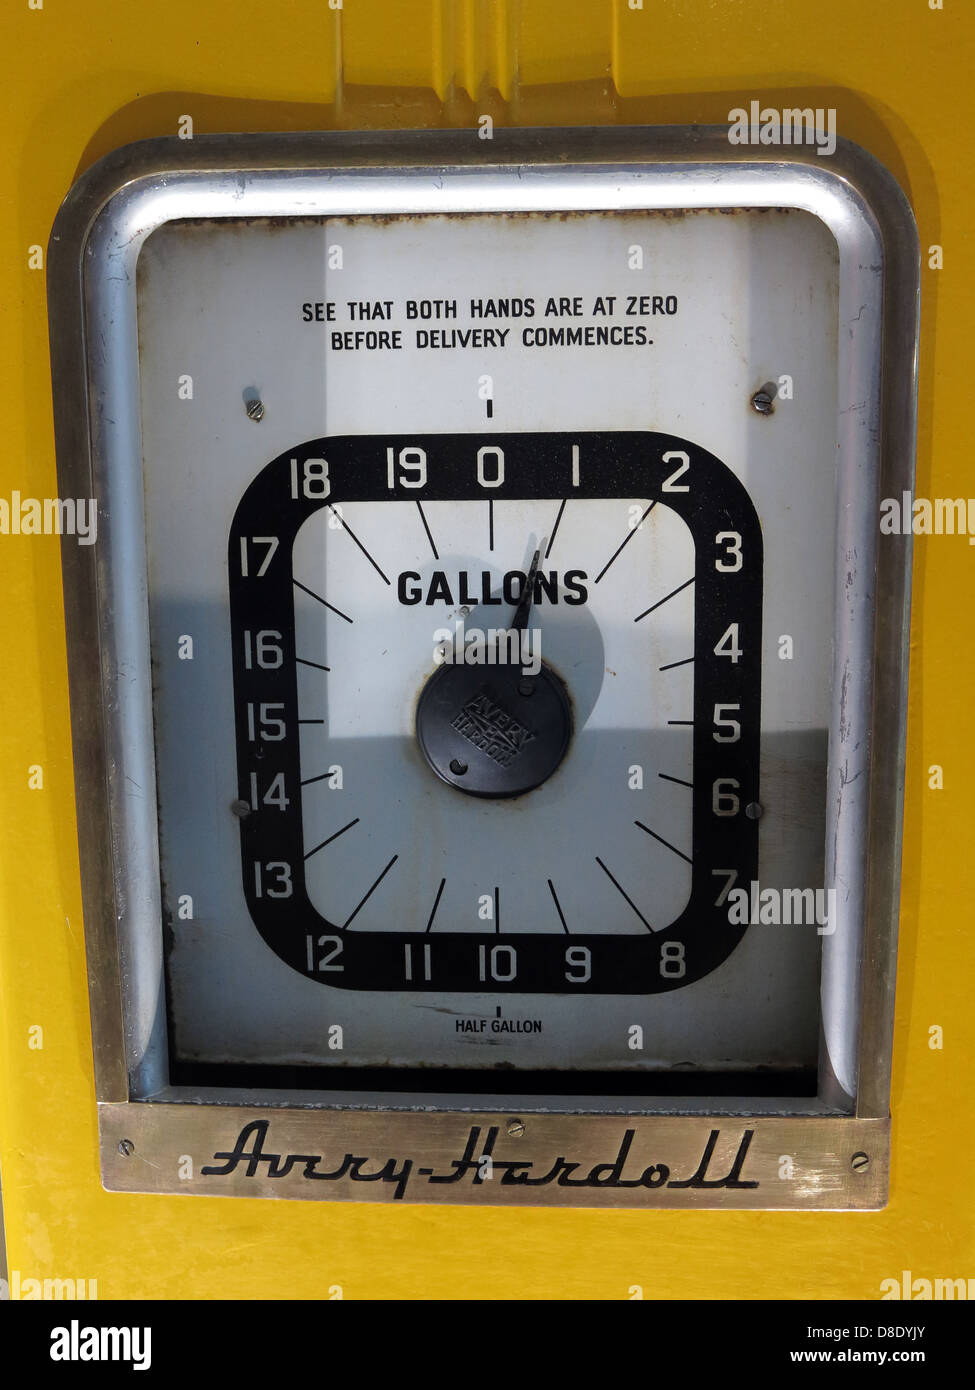 Yellow,Avery,Hardell,petrol,pump,gas,gallons,station,be,sure,that,hands,are,at,zero,before,delivery,commences,gotonysmith,dial,numbers,1,to,20,1-20,gasstation,filling,shell,Hardoll,model,1950,1950s,1950,s,1940s,calibrated,s 50s 50 40 1940 1940,gotonysmith,Buy Pictures of,Buy Images Of